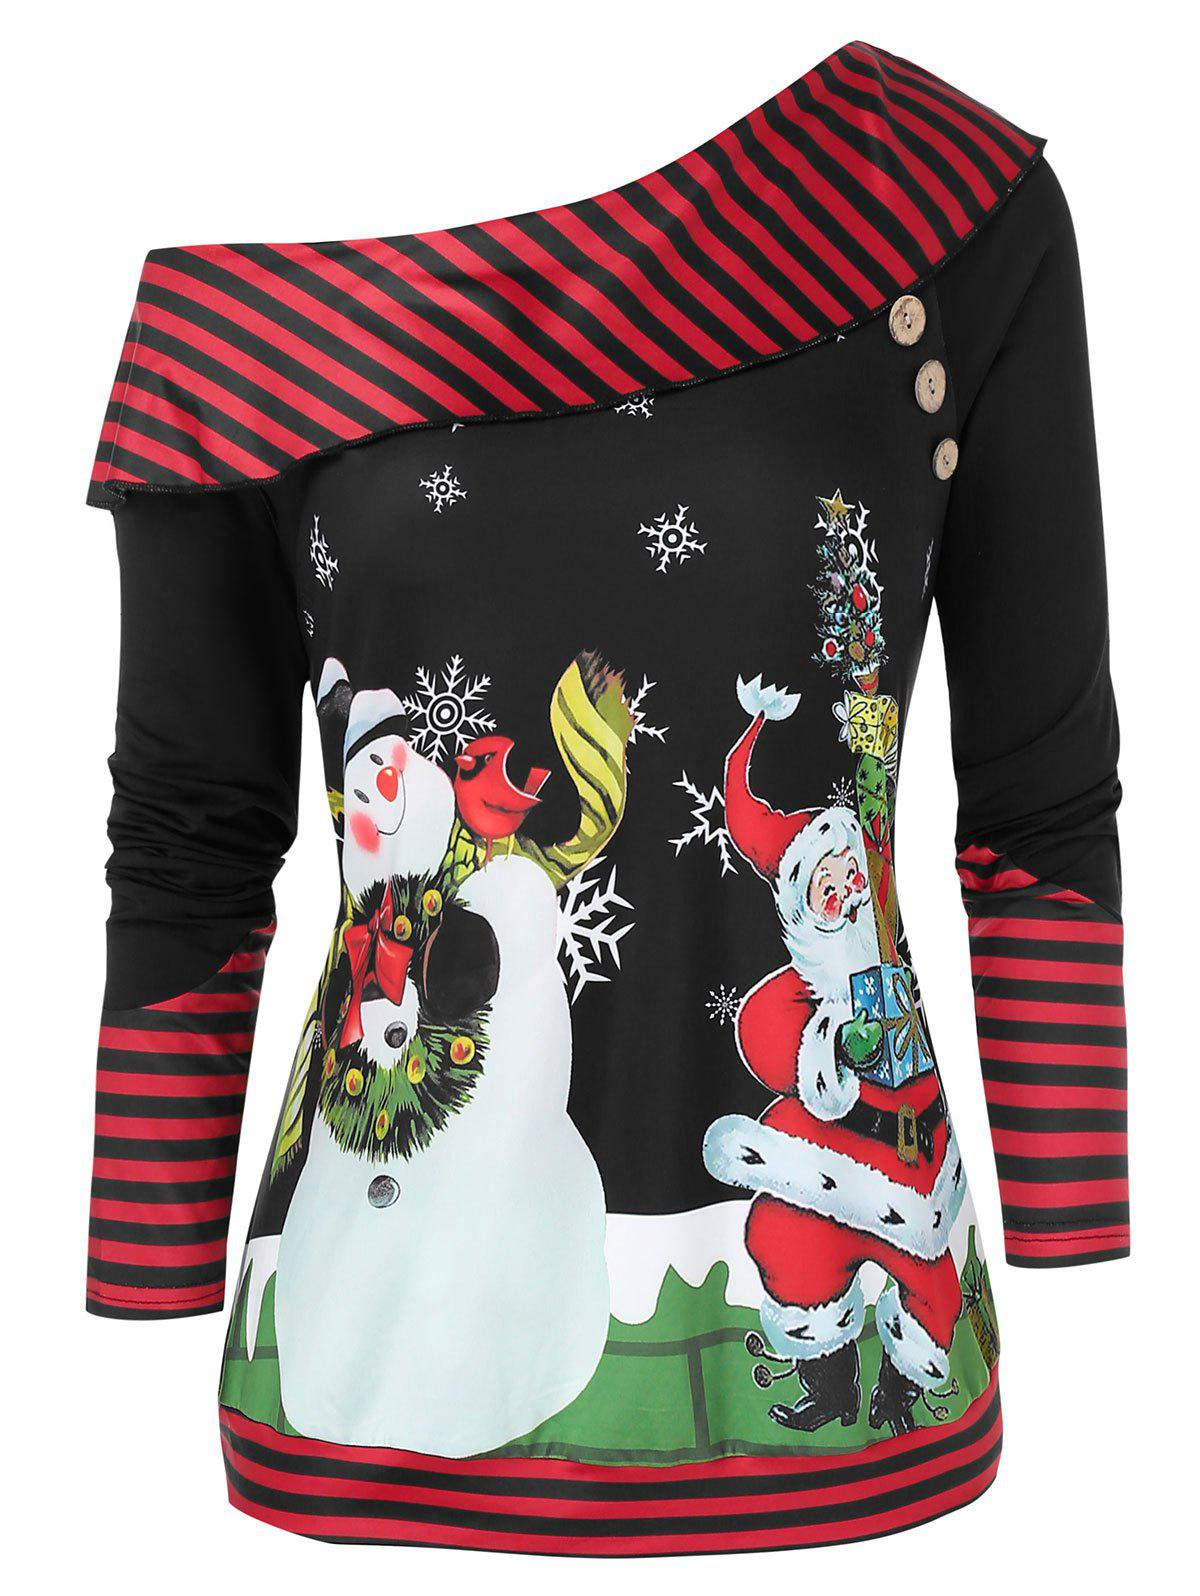 Plus Size Christmas Skew Neck Snowman Santa Claus Sweatshirt - RED WINE 5X